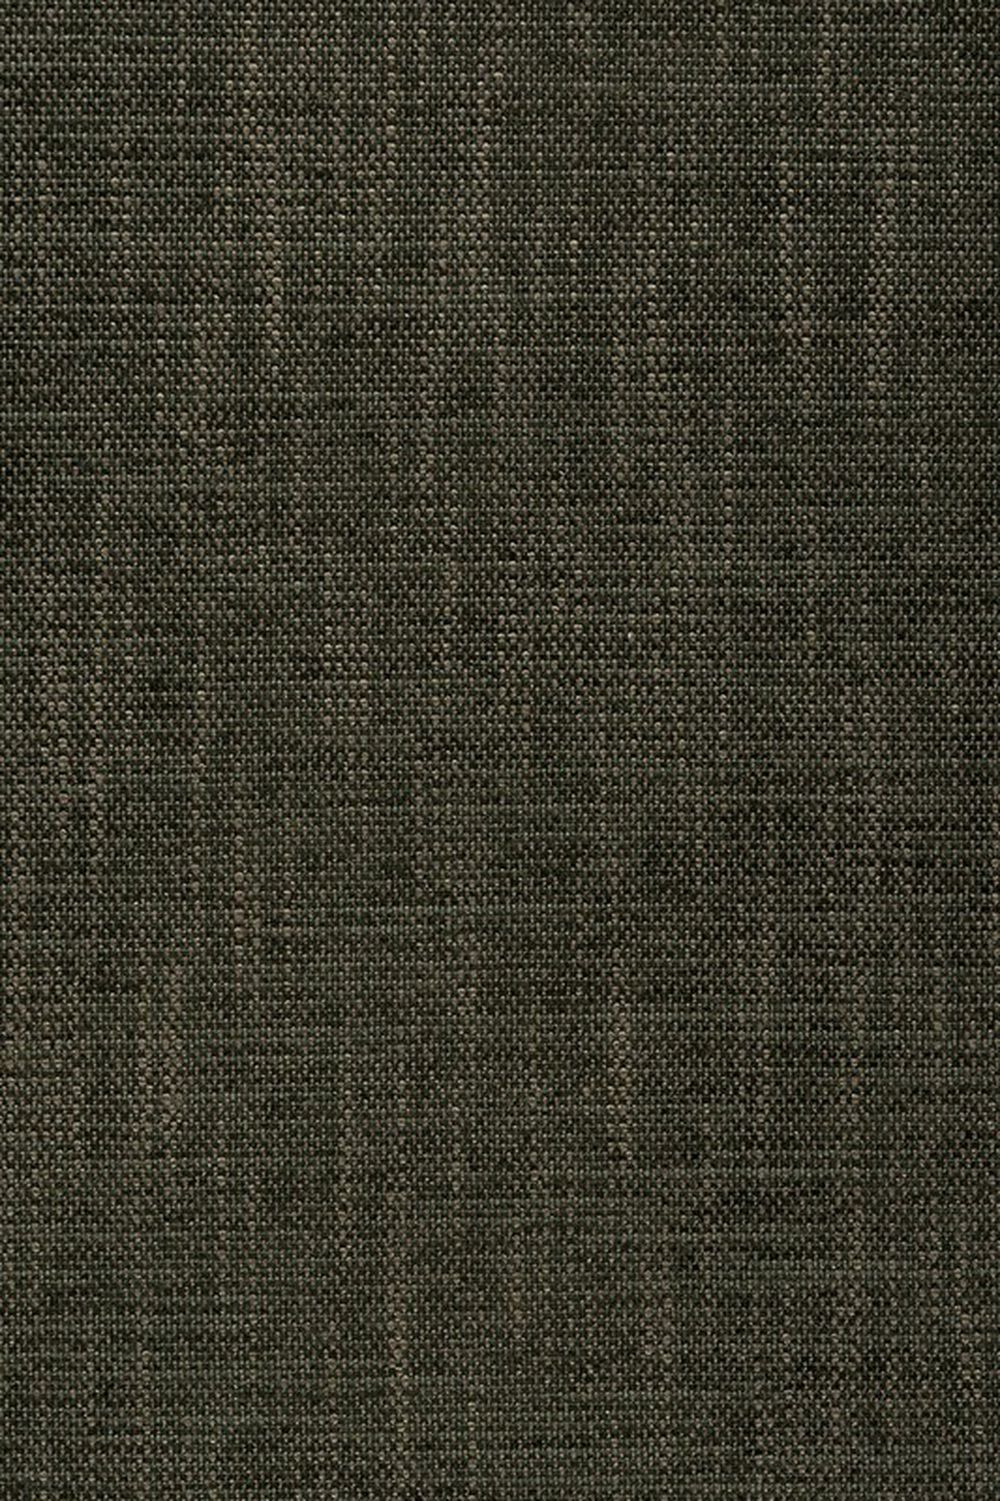 Photo of the fabric Sahel Martini swatch by Mokum. Use for Upholstery Heavy Duty, Accessory. Style of Plain, Texture